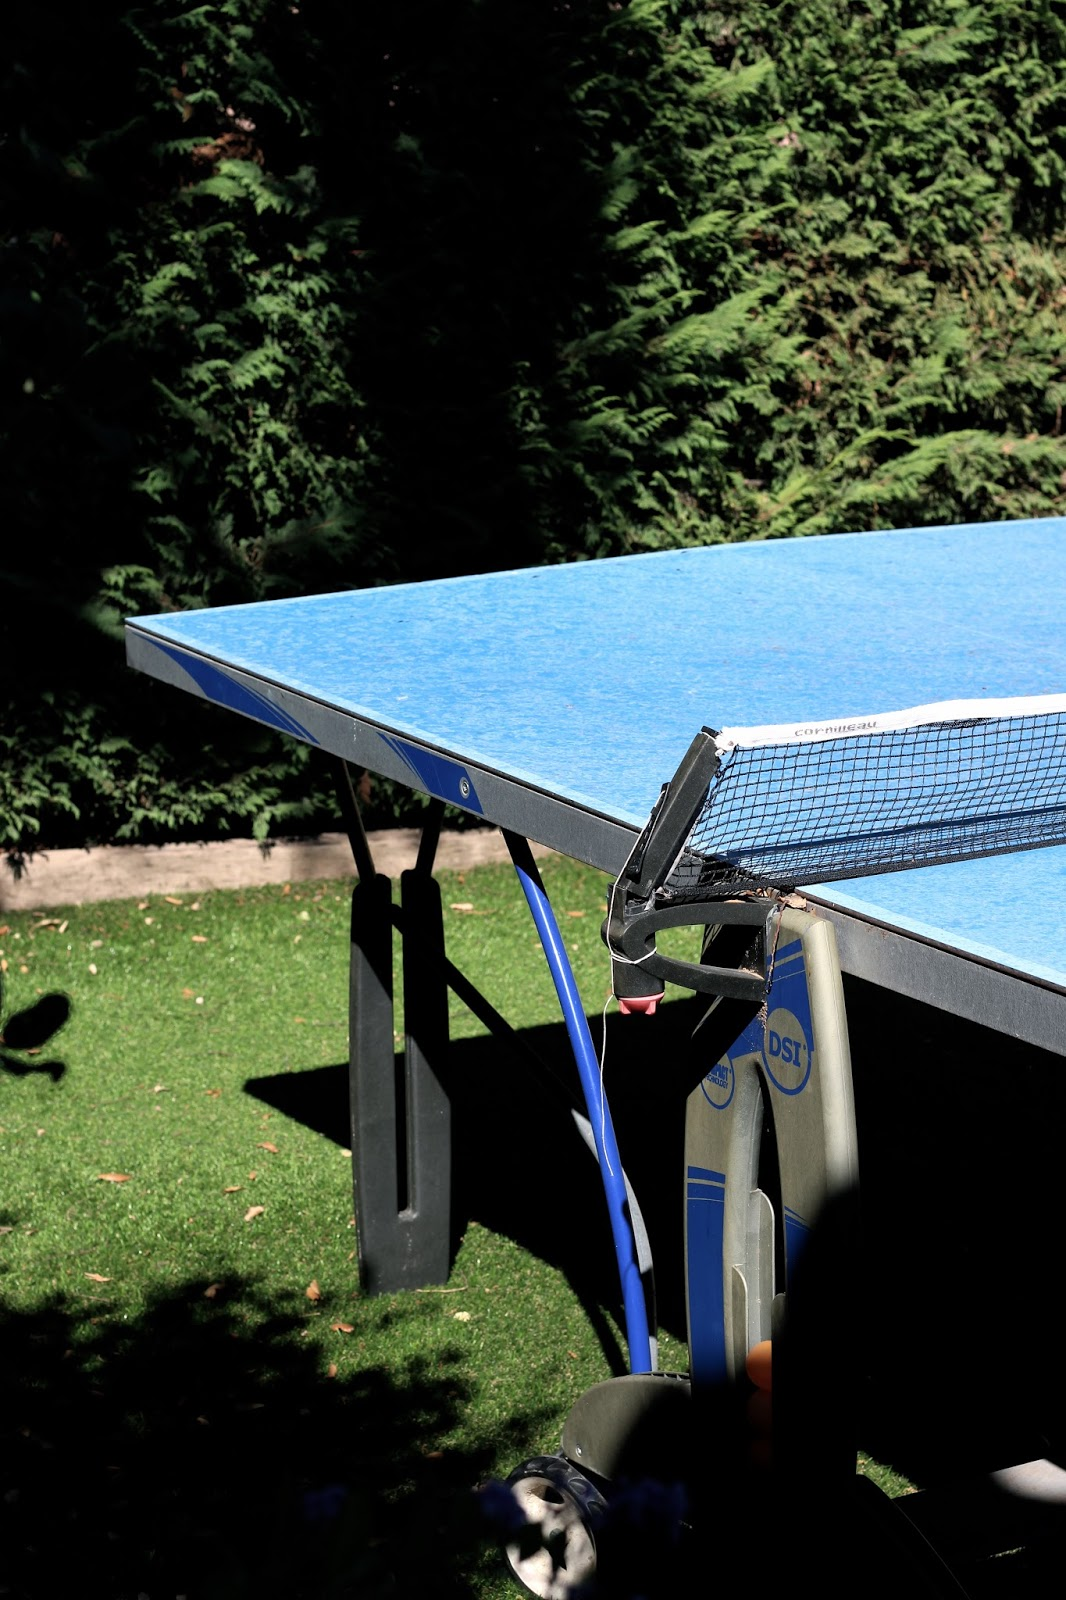 Photography of blue table tennis table